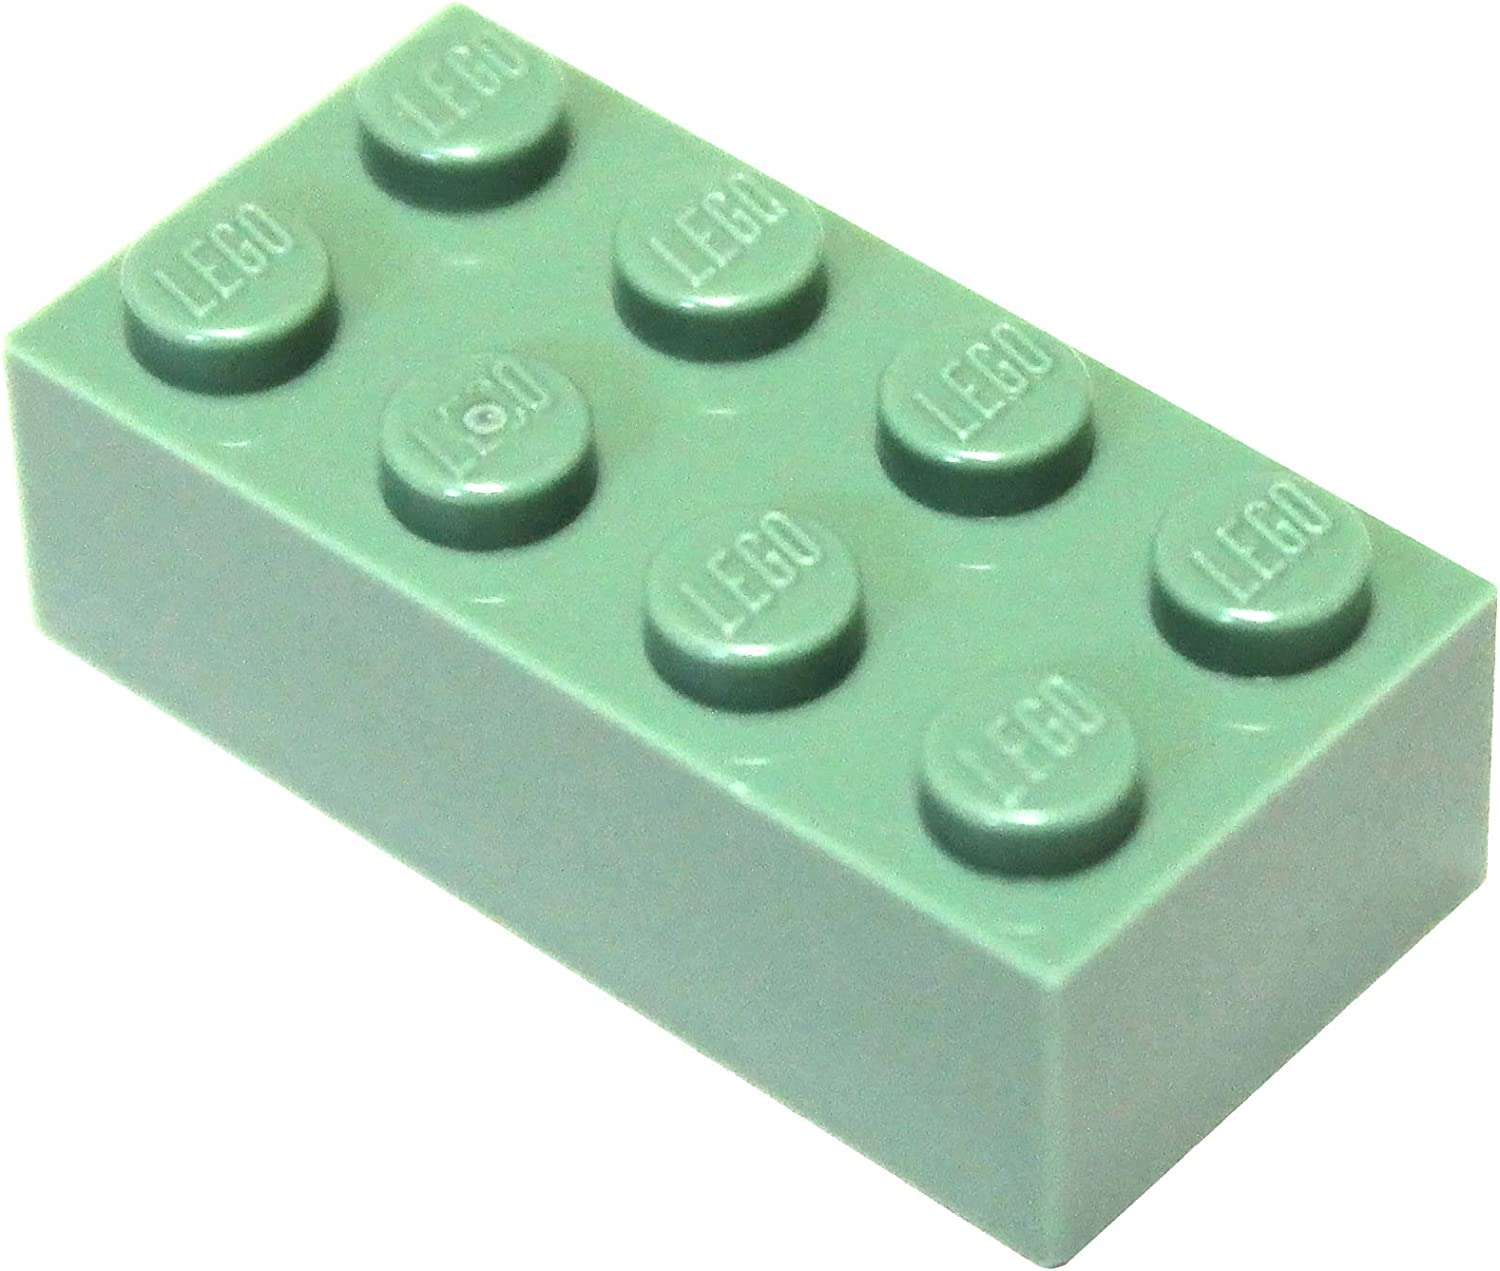 LEGO Parts and Pieces: Sand Green 2x4 Brick x200